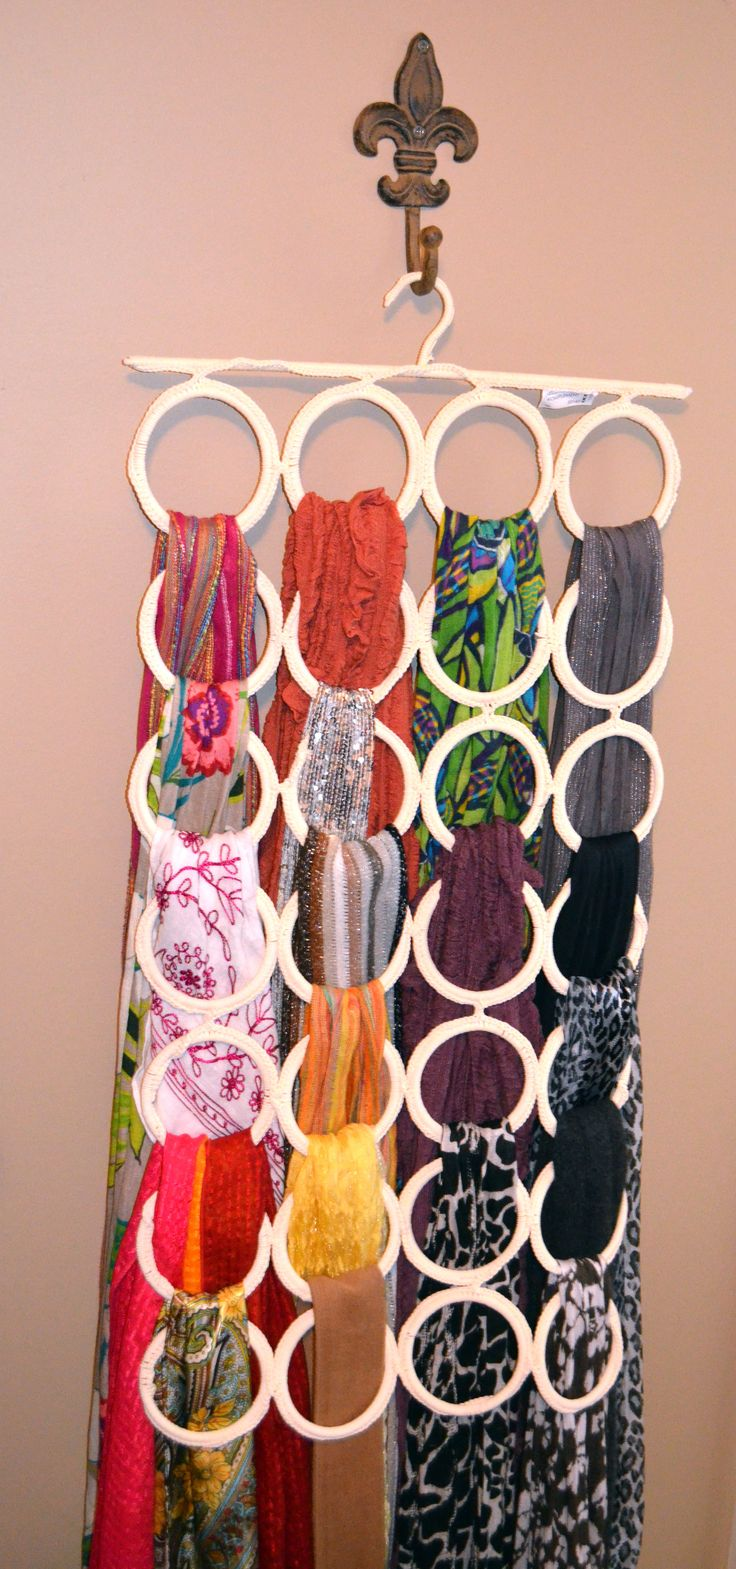 scarf hanger the hanging loop thing i found at ikea and